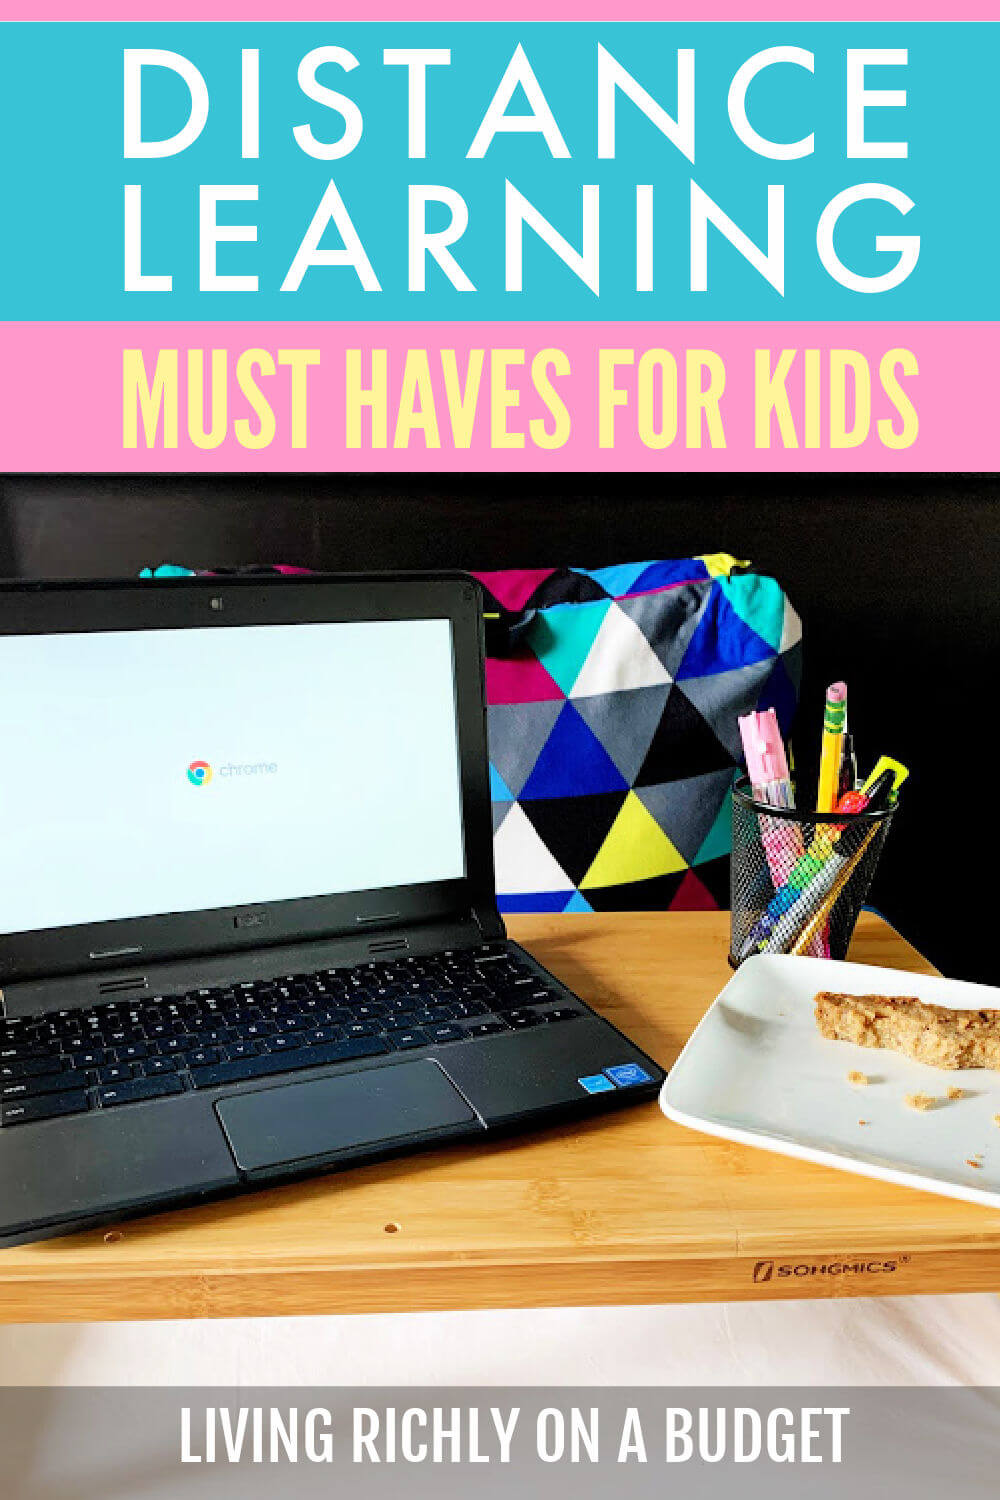 Distance-Learning-Supplies-for-Kids